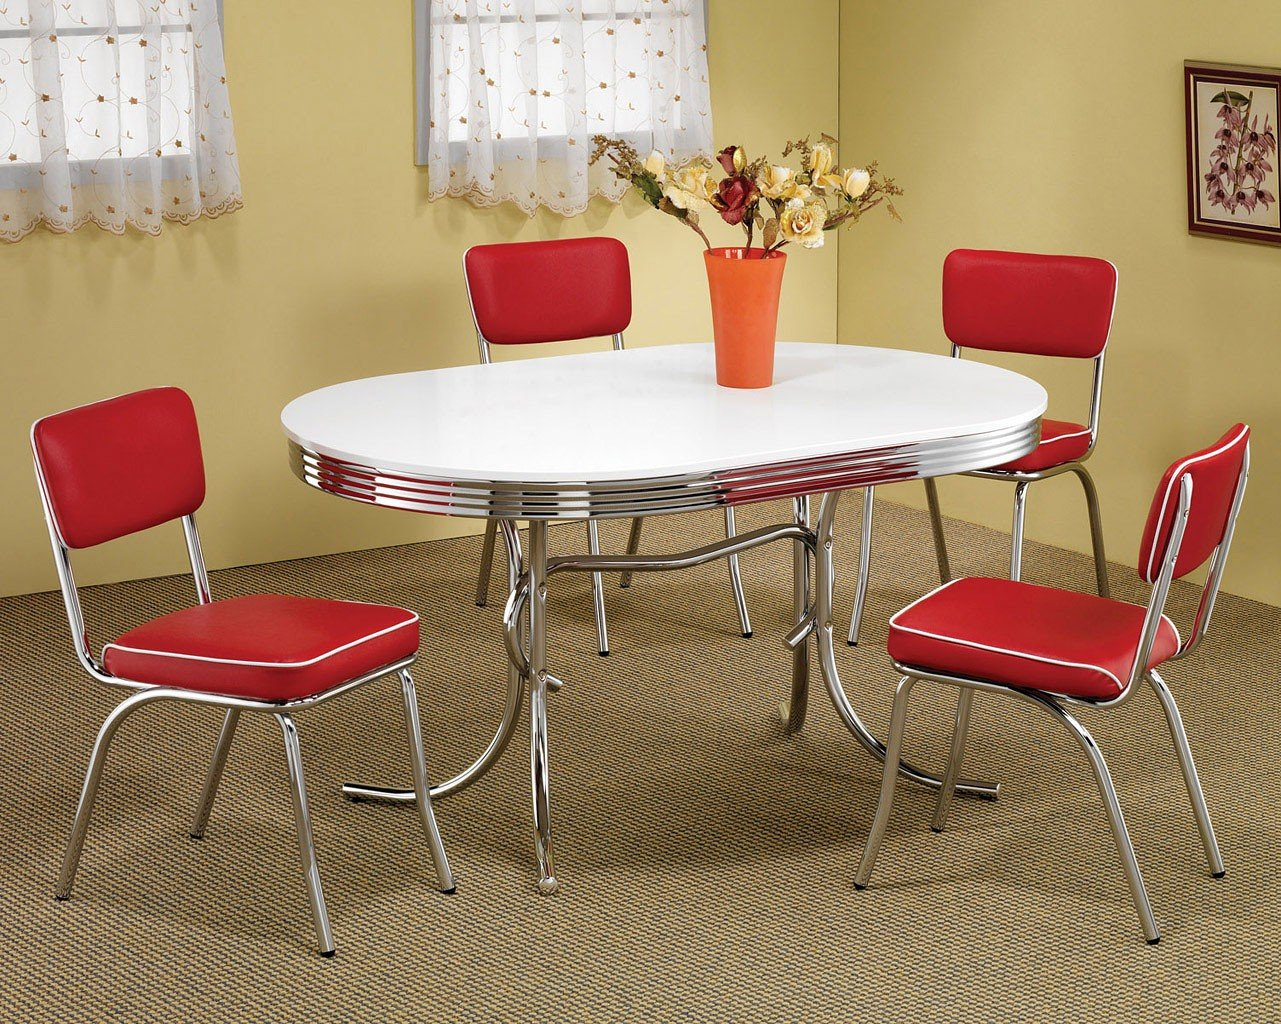 Retro Dining Room Set W Red Chairs Casual Dining Sets